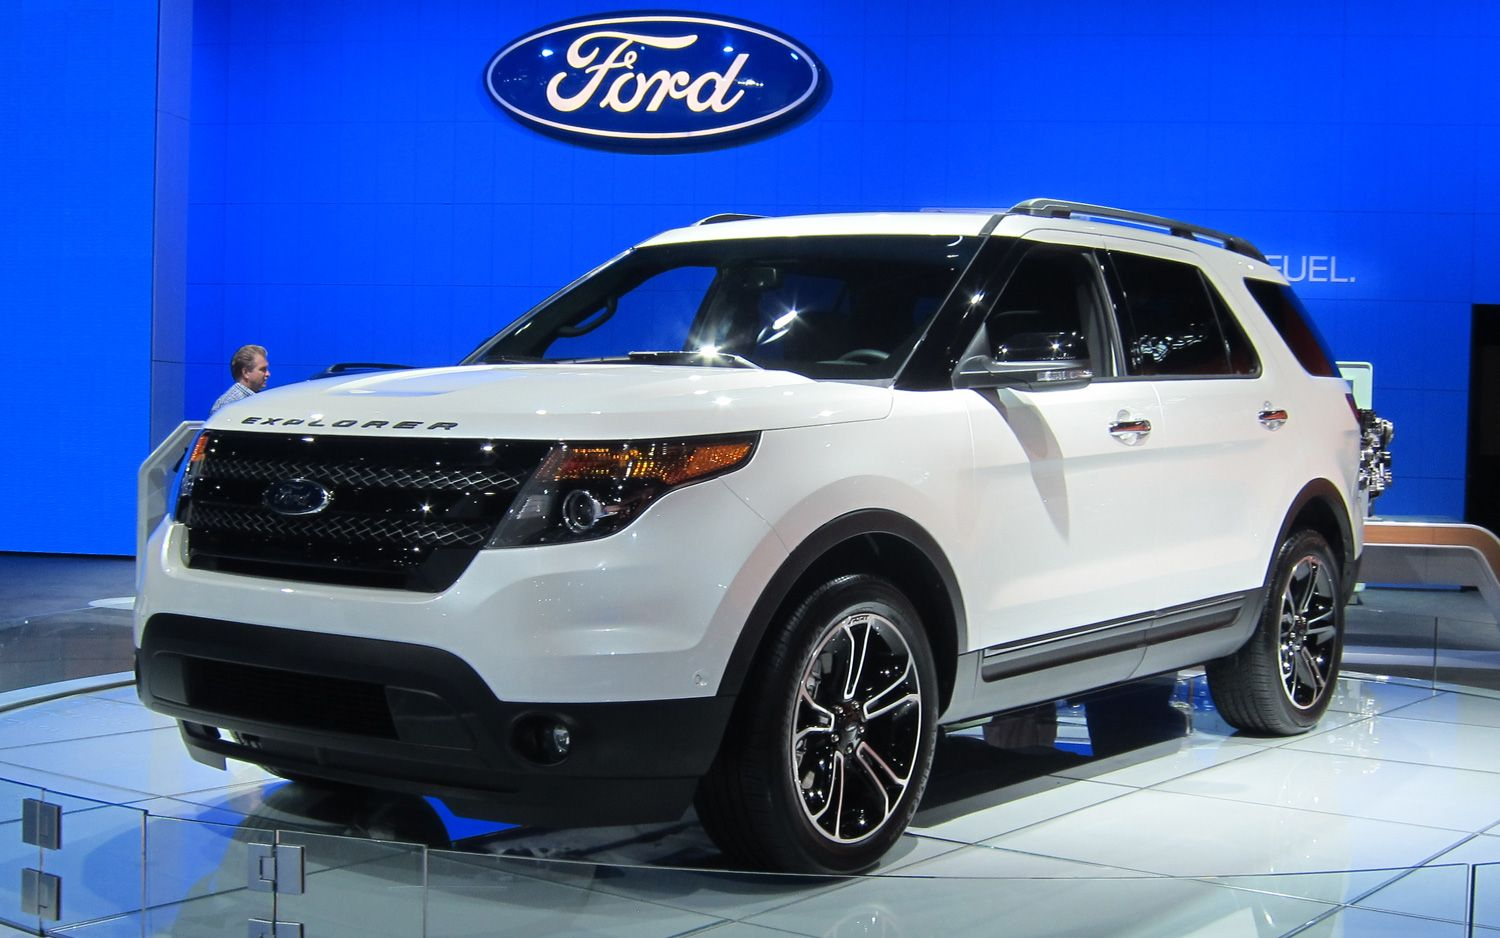 2014 ford explorer ford explorer pinterest ford explorer 2014 ford explorer and ford. Black Bedroom Furniture Sets. Home Design Ideas